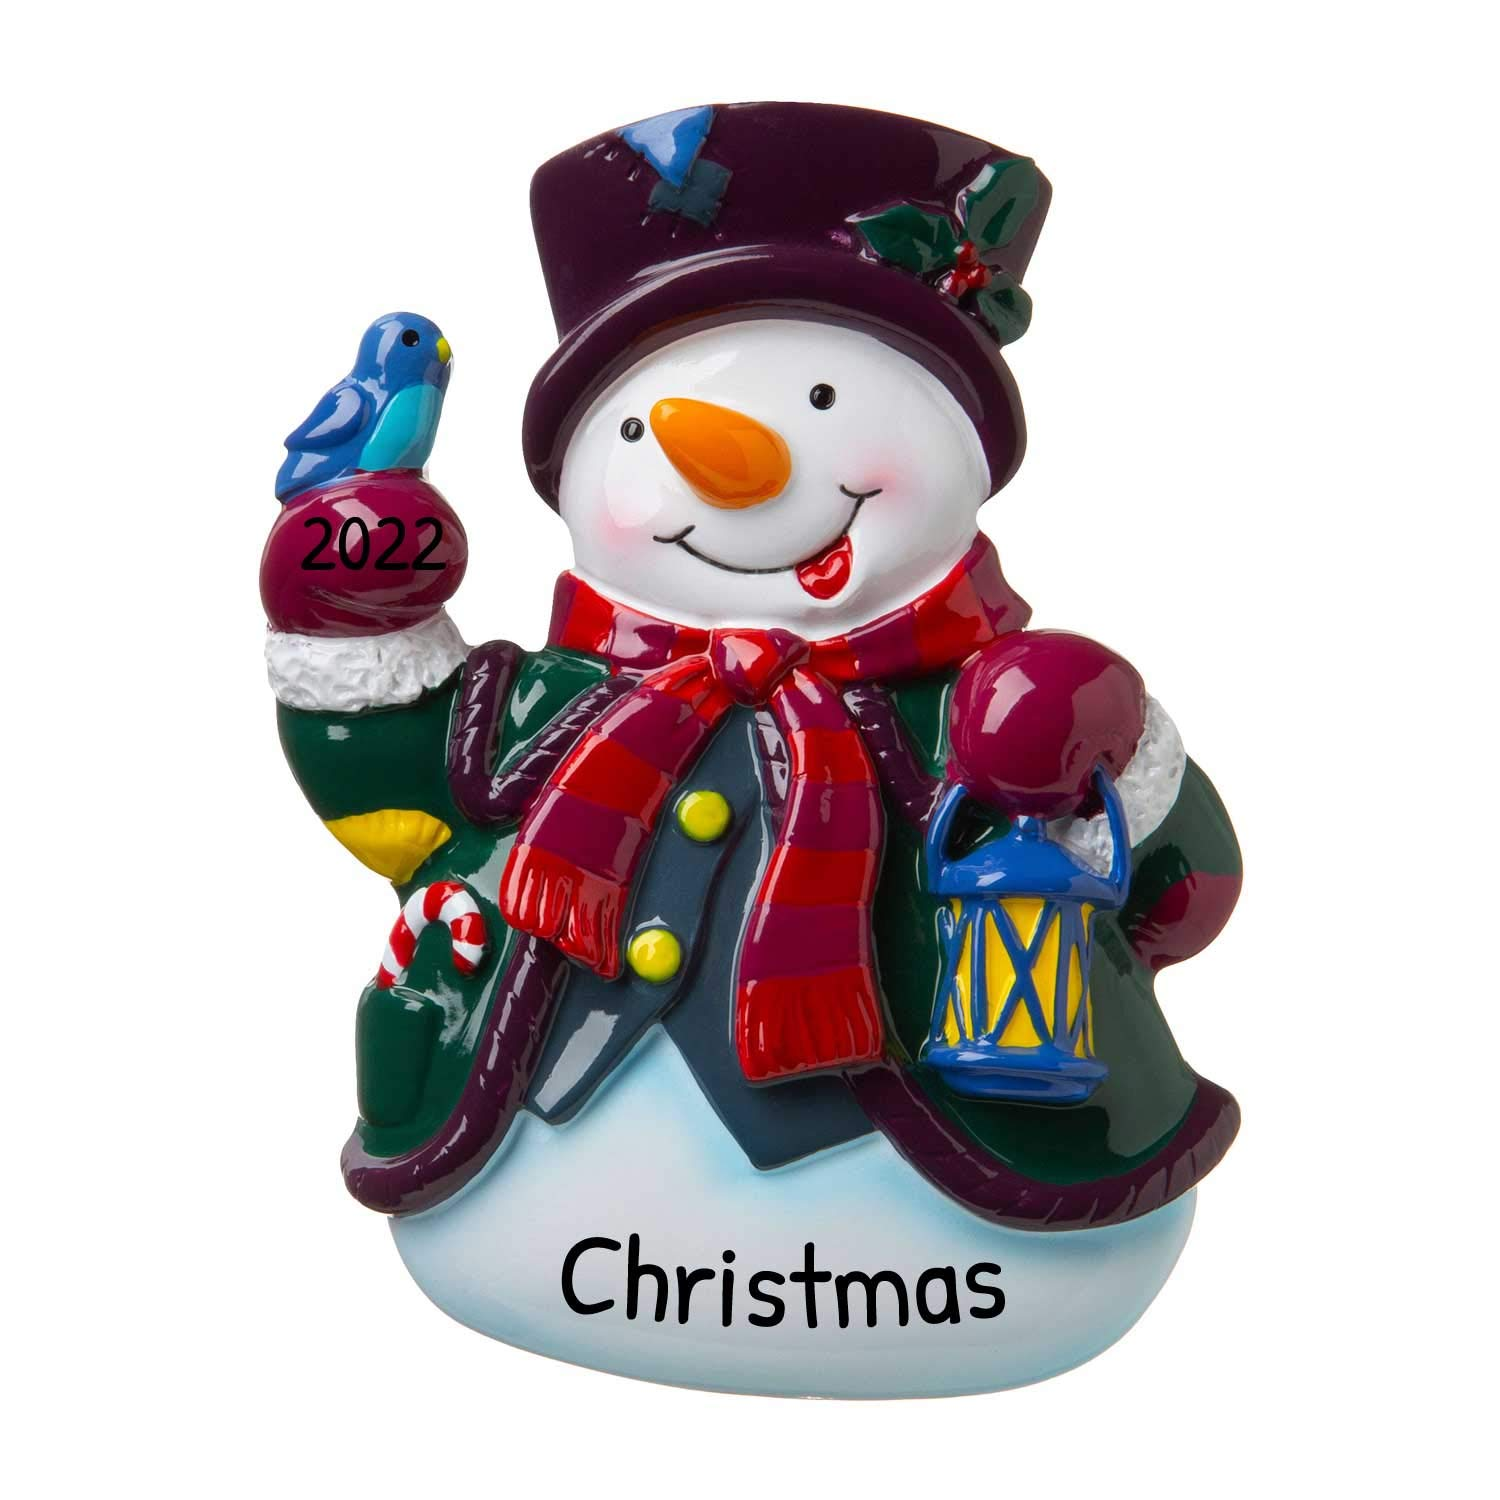 Image of Adorable Personalized Snowman Ornament - More Snowmen Designs Available